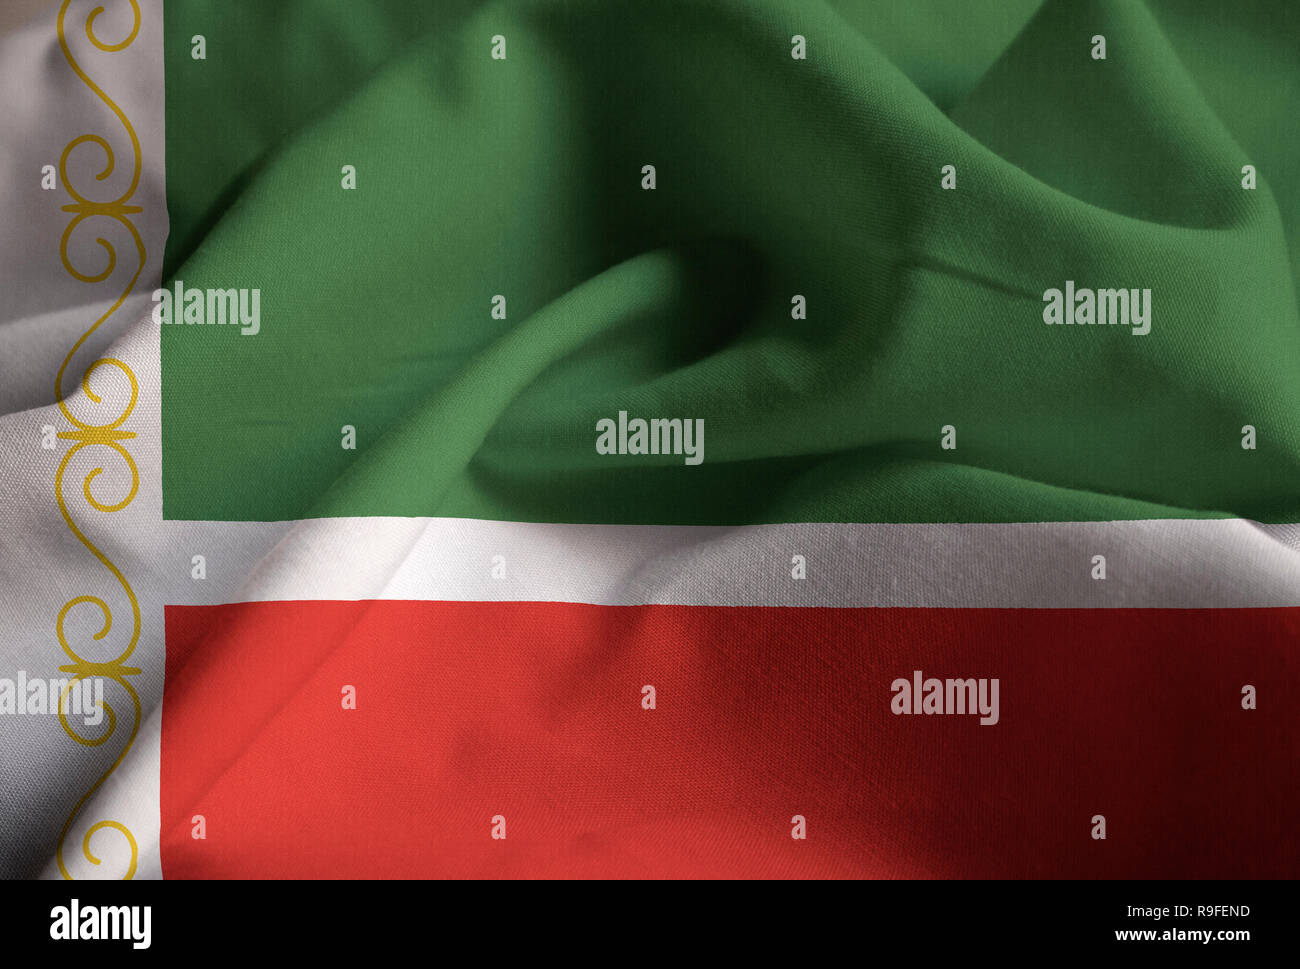 Closeup of Ruffled Chechen Republic Flag, Chechen Republic Flag Blowing in Wind - Stock Image